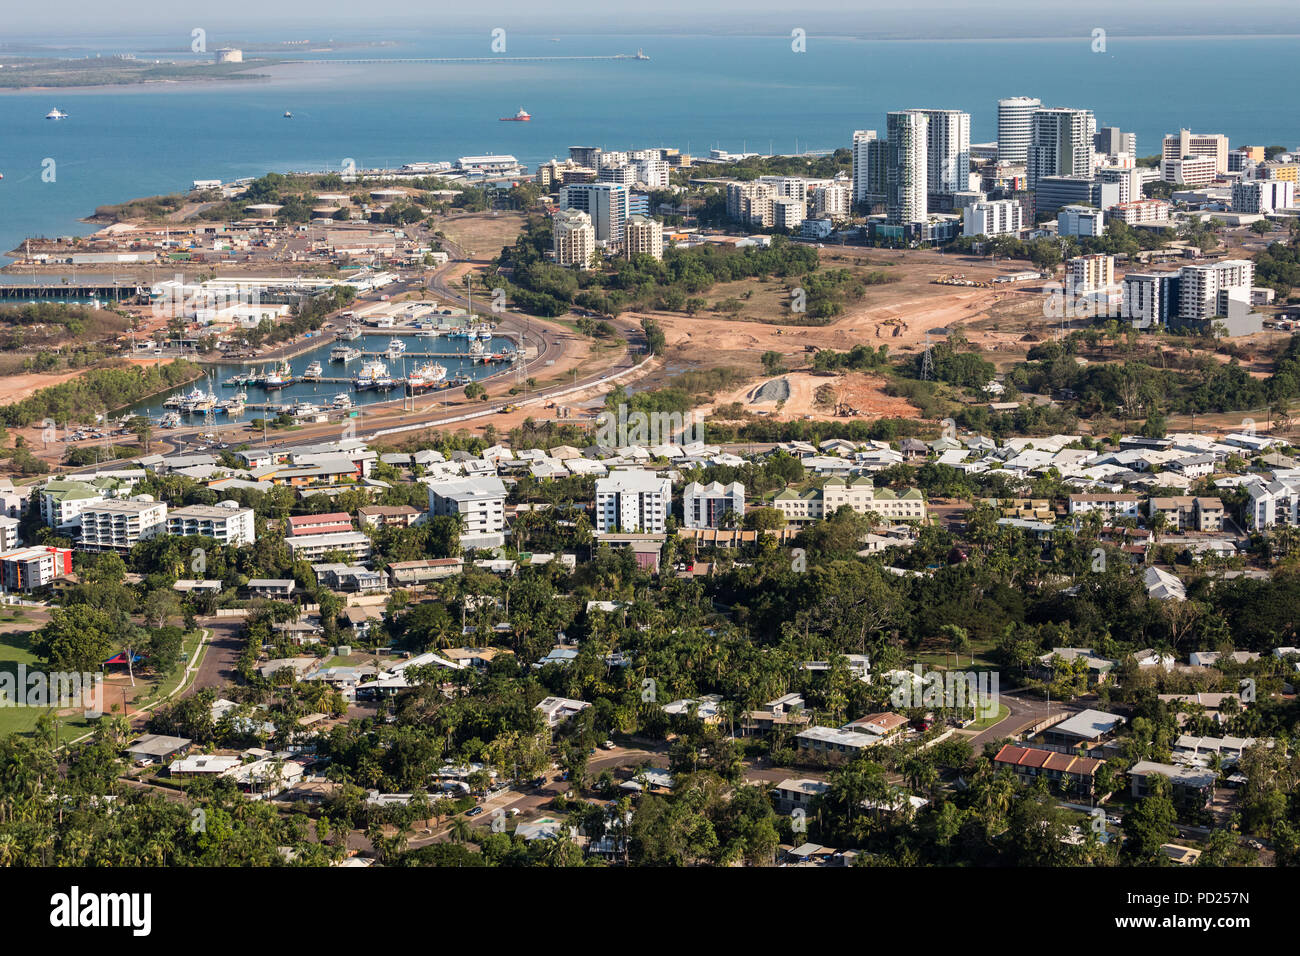 An aerial photo of Darwin, the capital city of the Northern Territory of Australia showing the central business district and nearby suburbs of Stuart  - Stock Image